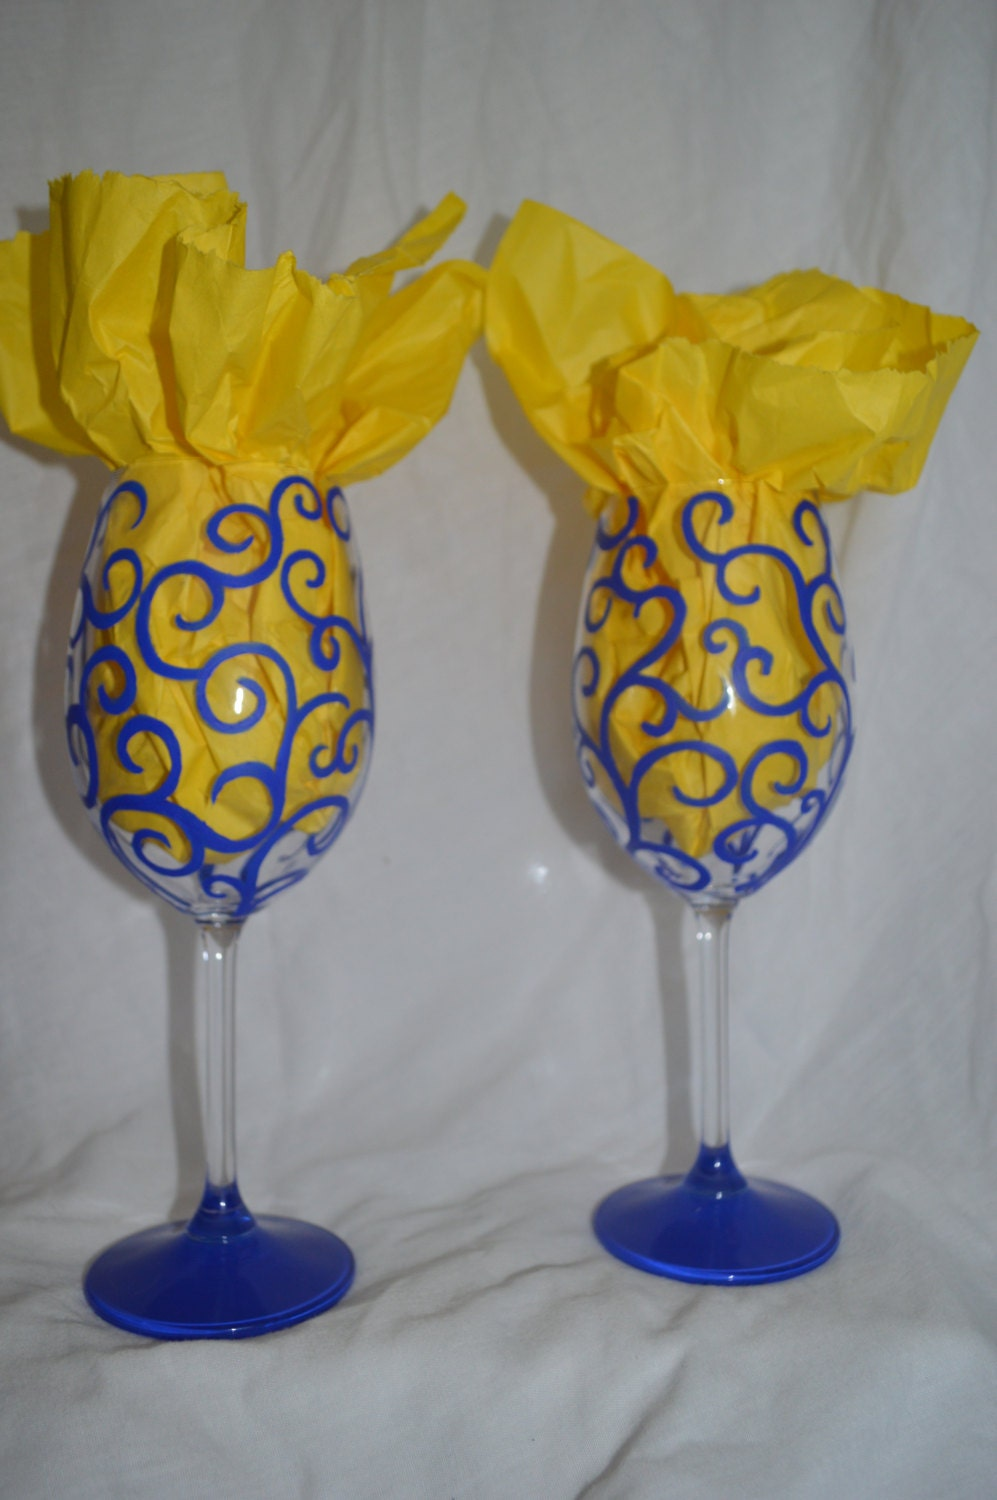 details hand painted blue swirl wine glasses - Wine Glass Design Ideas